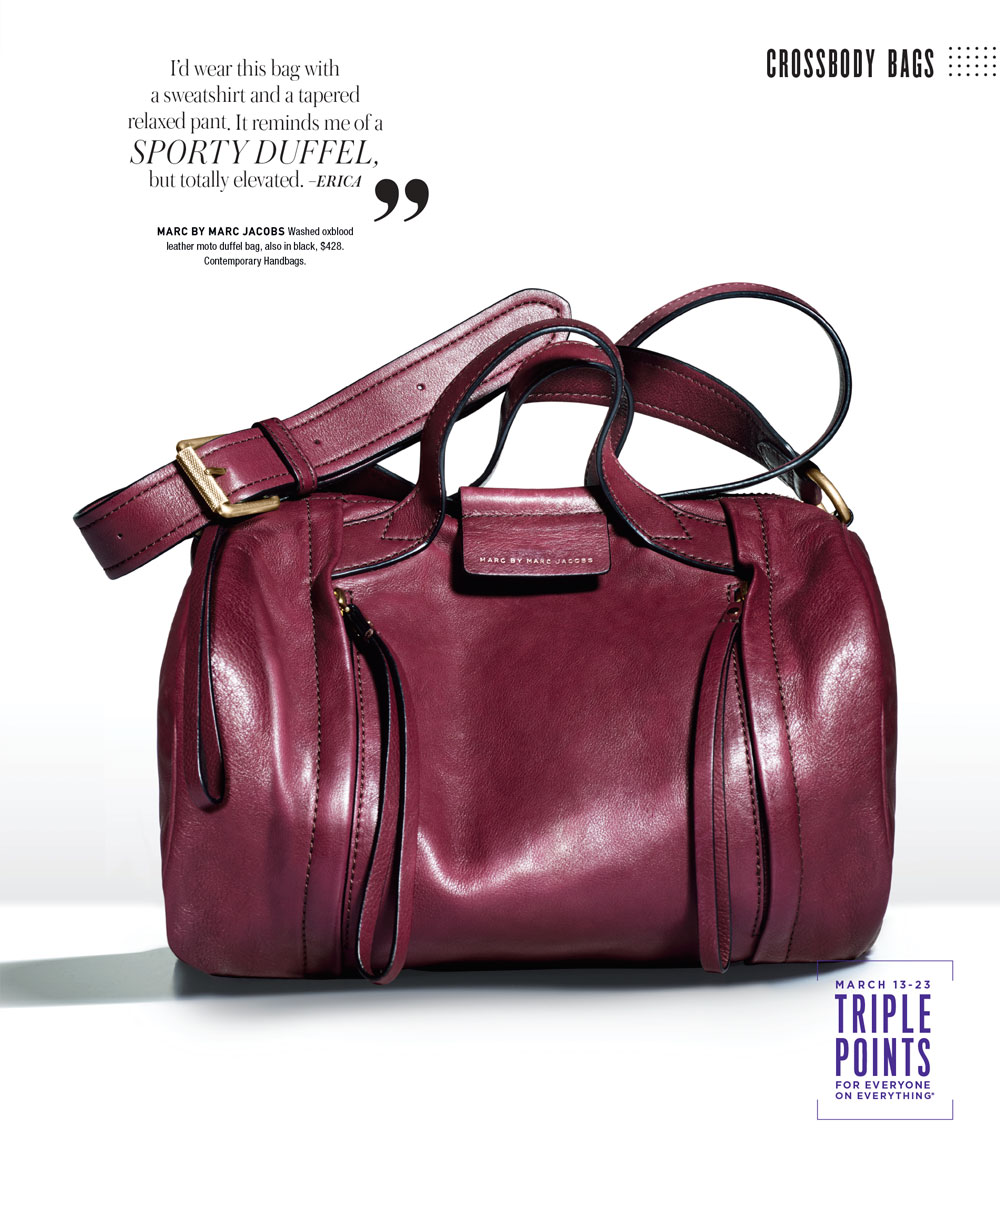 Bloomingdale's Catalog Marc by Marc Jacobs Duffle Bag